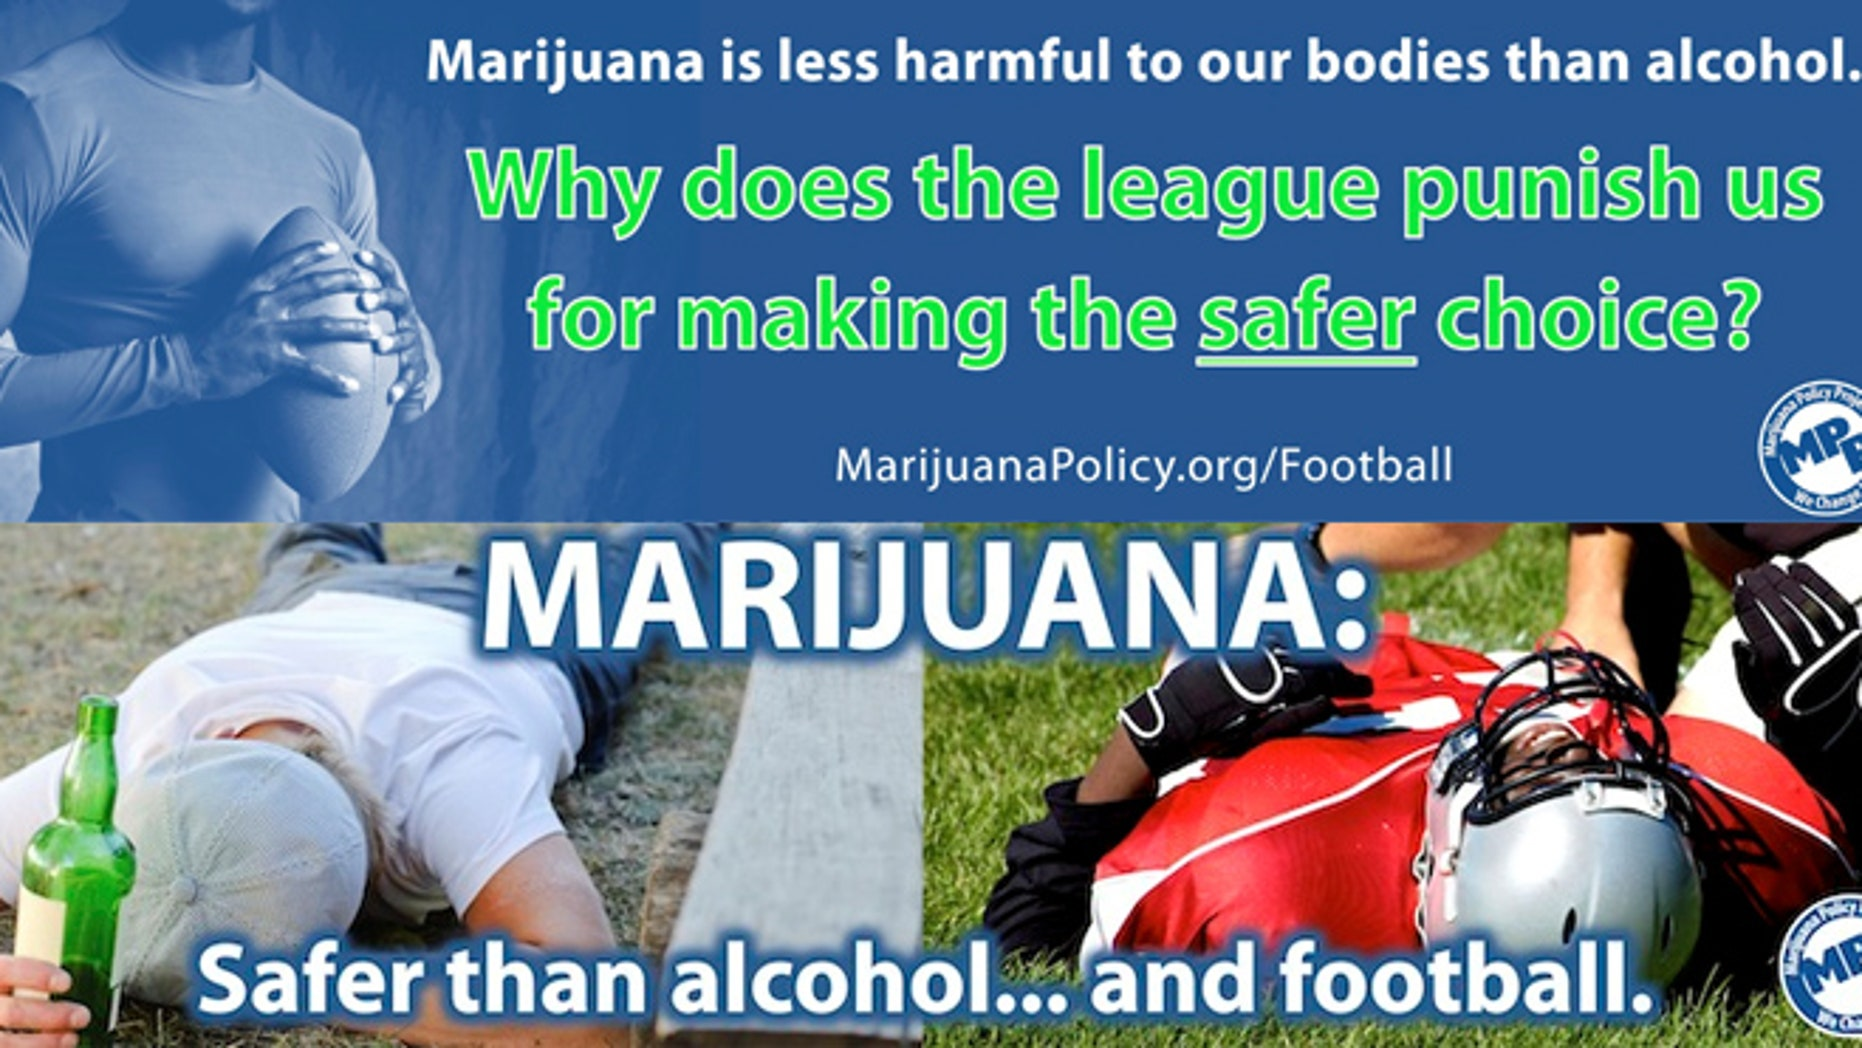 The Marijuana Policy Project sees this year's Super Bowl as a chance to get the NFL to update its policy regarding the drug's use.